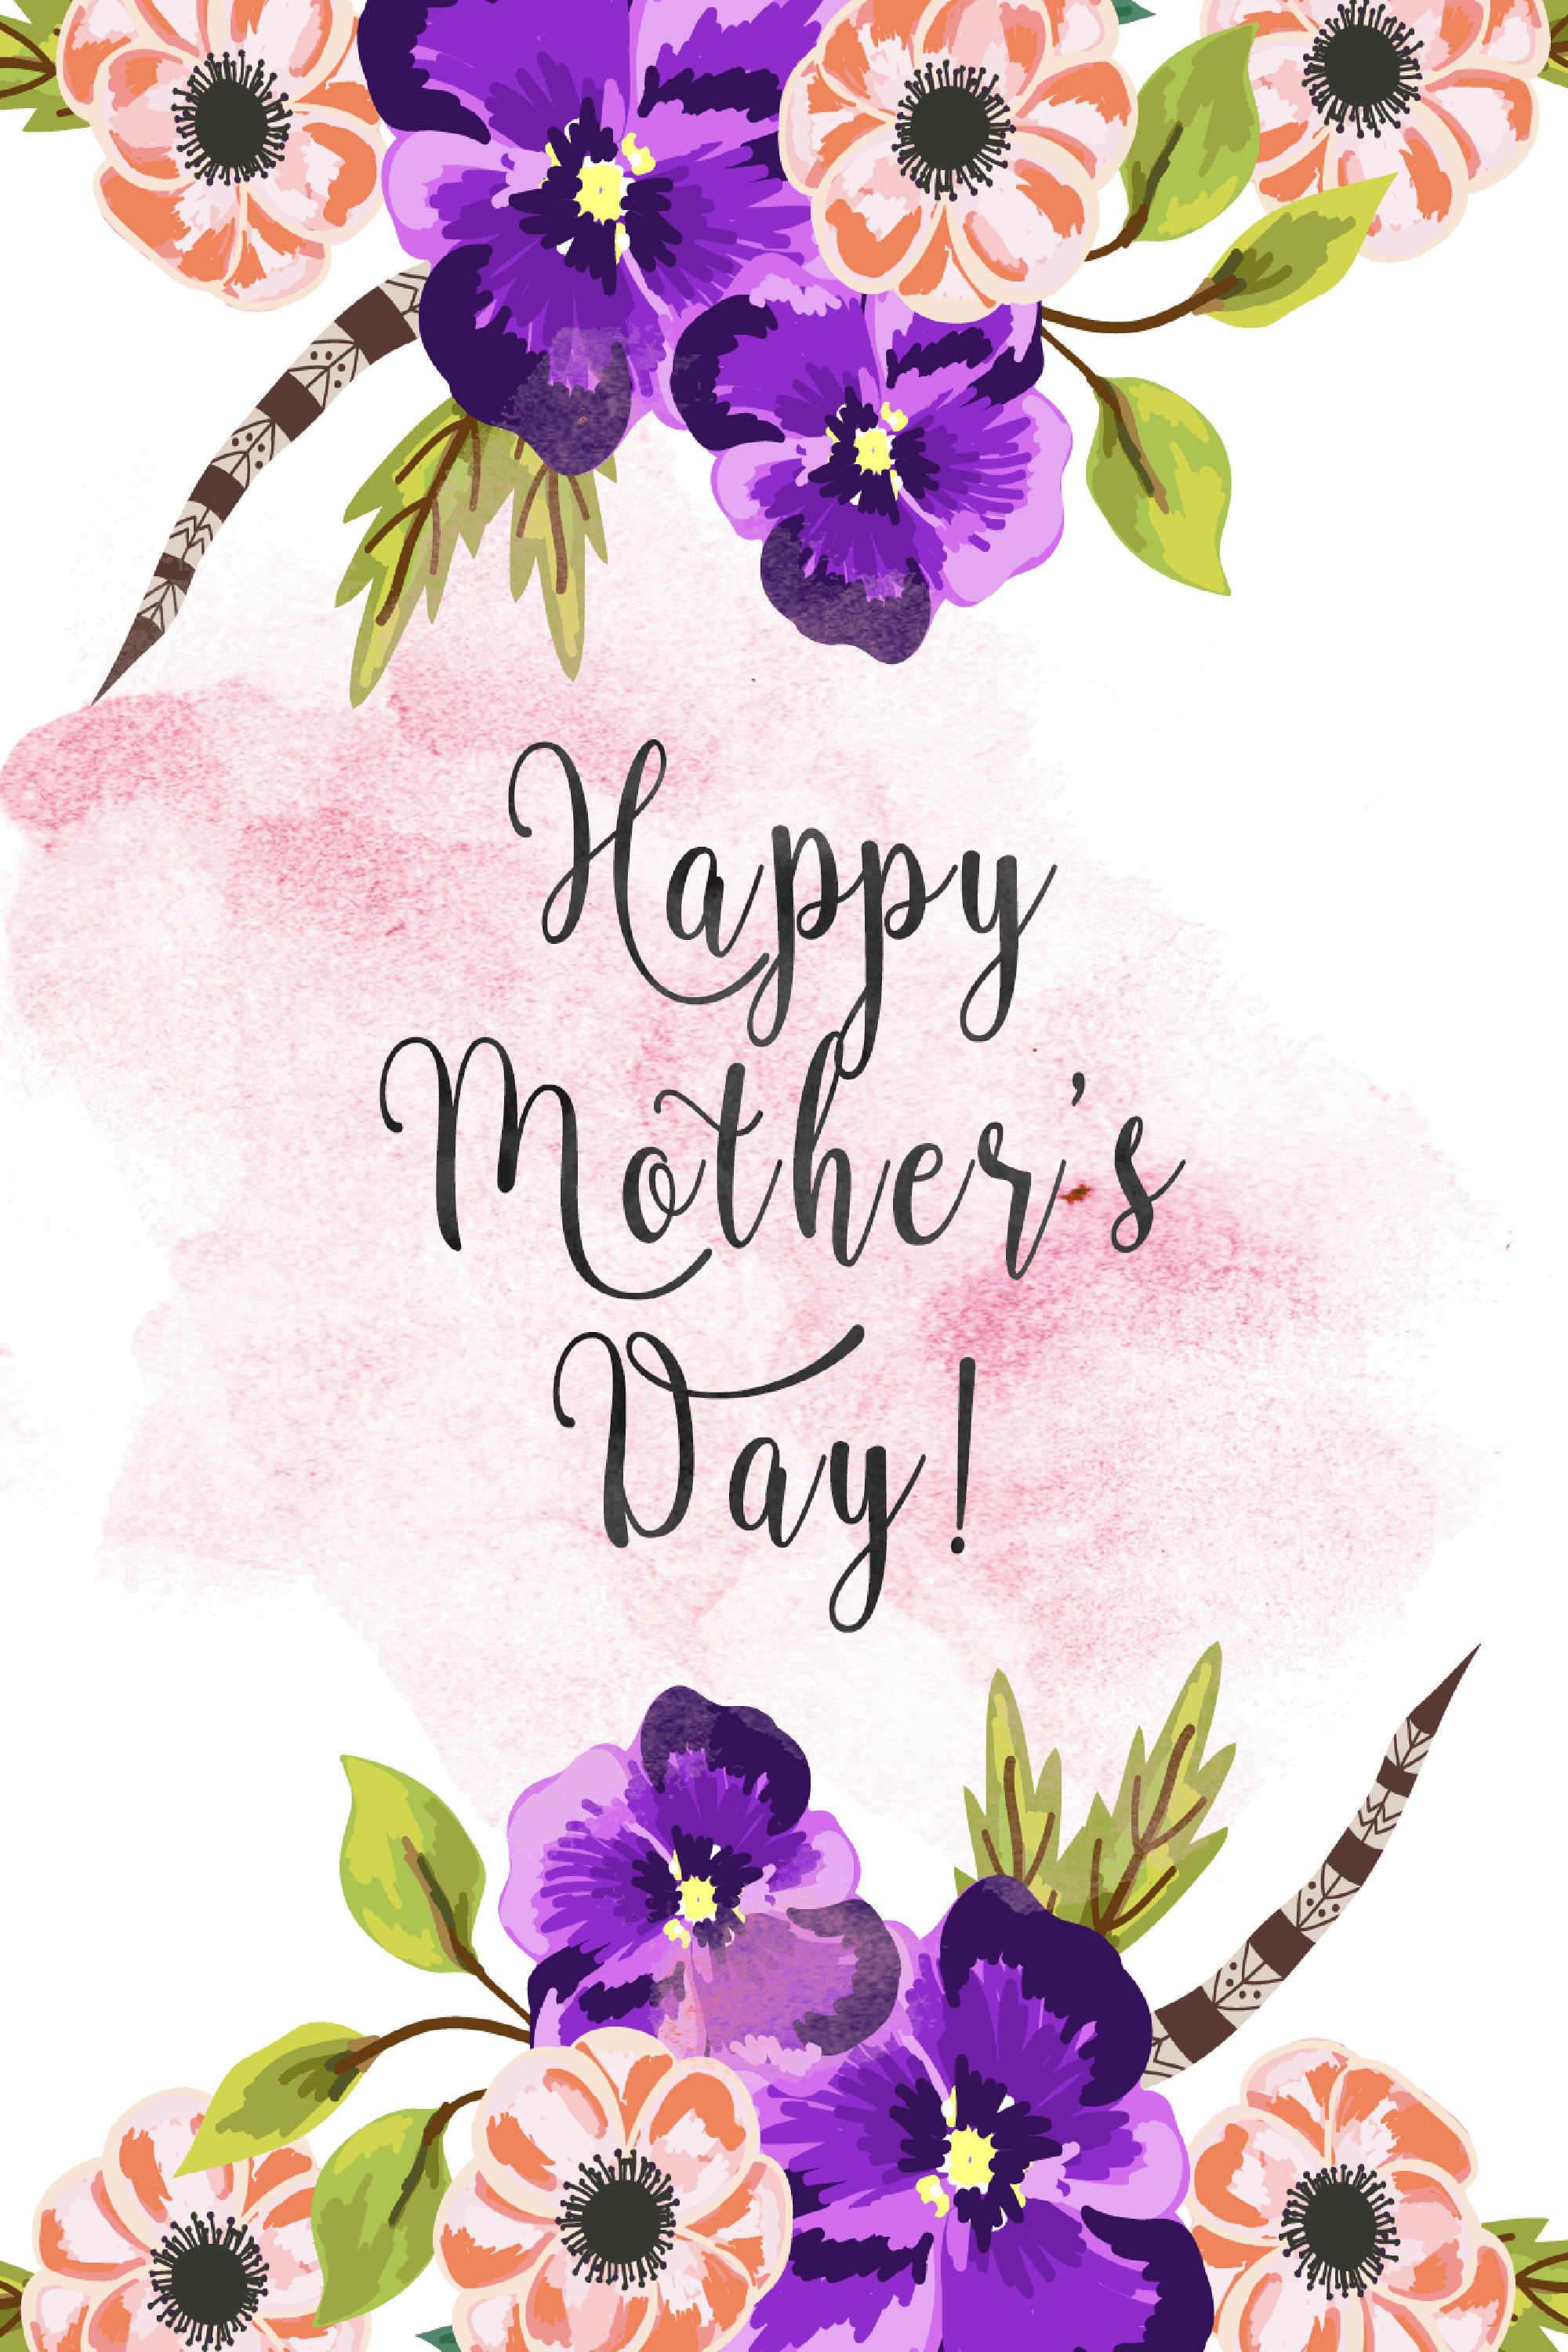 30 Cute Free Printable Mothers Day Cards - Mom Cards You Can Print - Free Printable Mothers Day Card From Dog